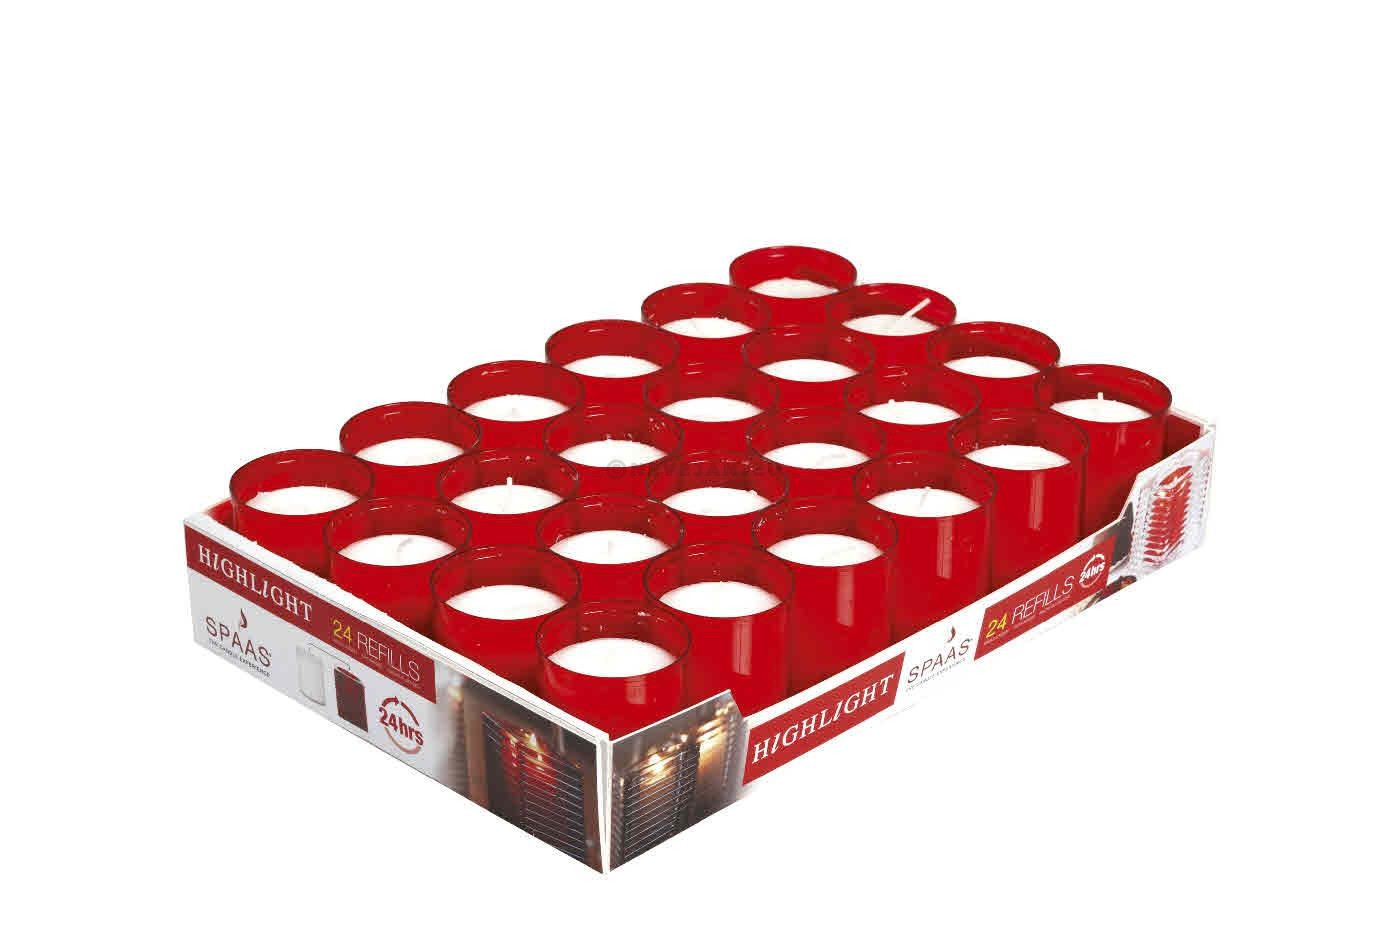 Candle Highlight refills red 24pcs Spaas